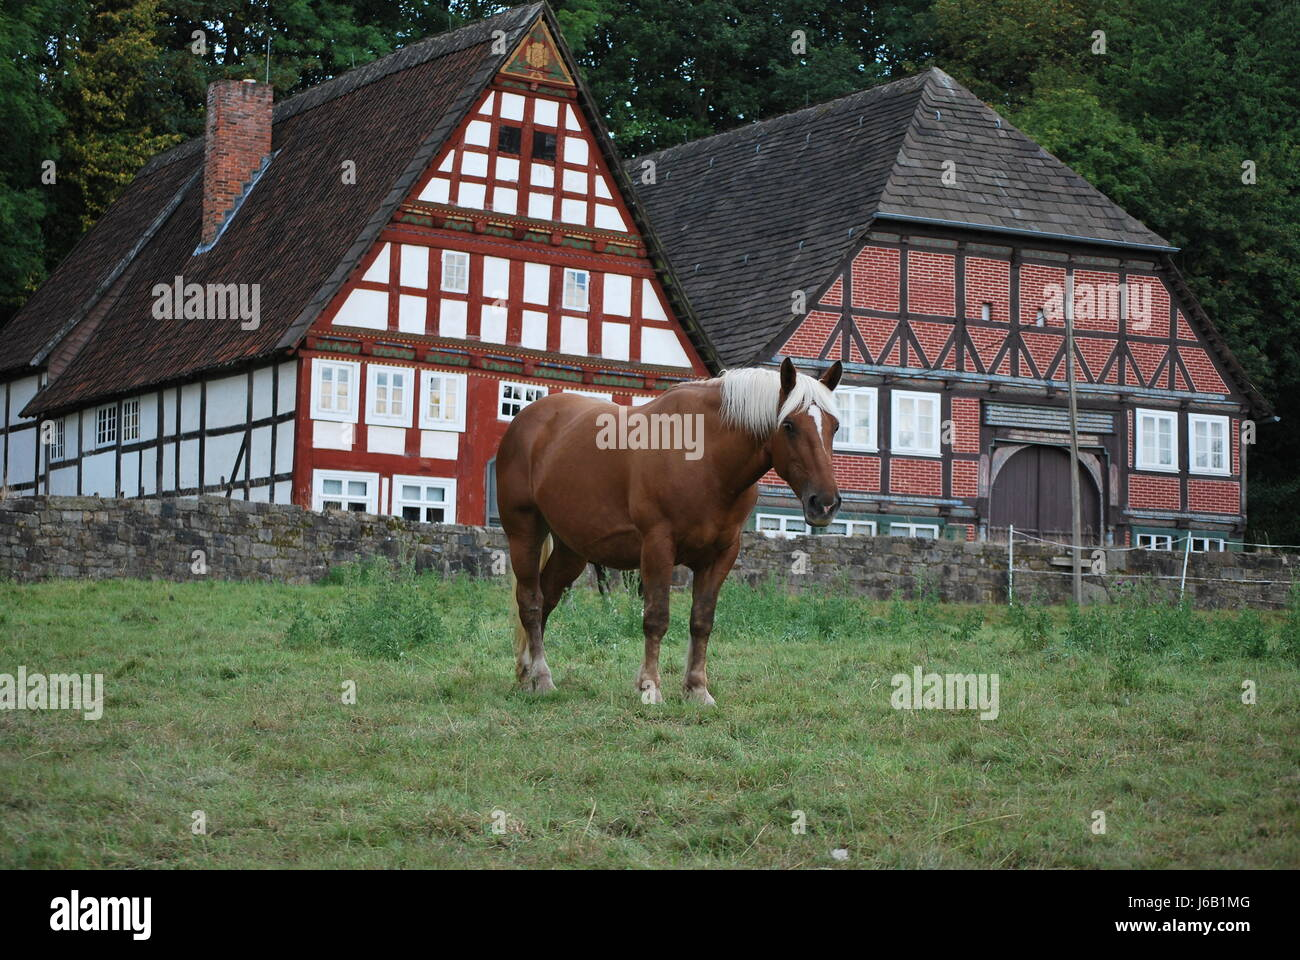 house building horse wood strong horses pull old ride horse wood ...